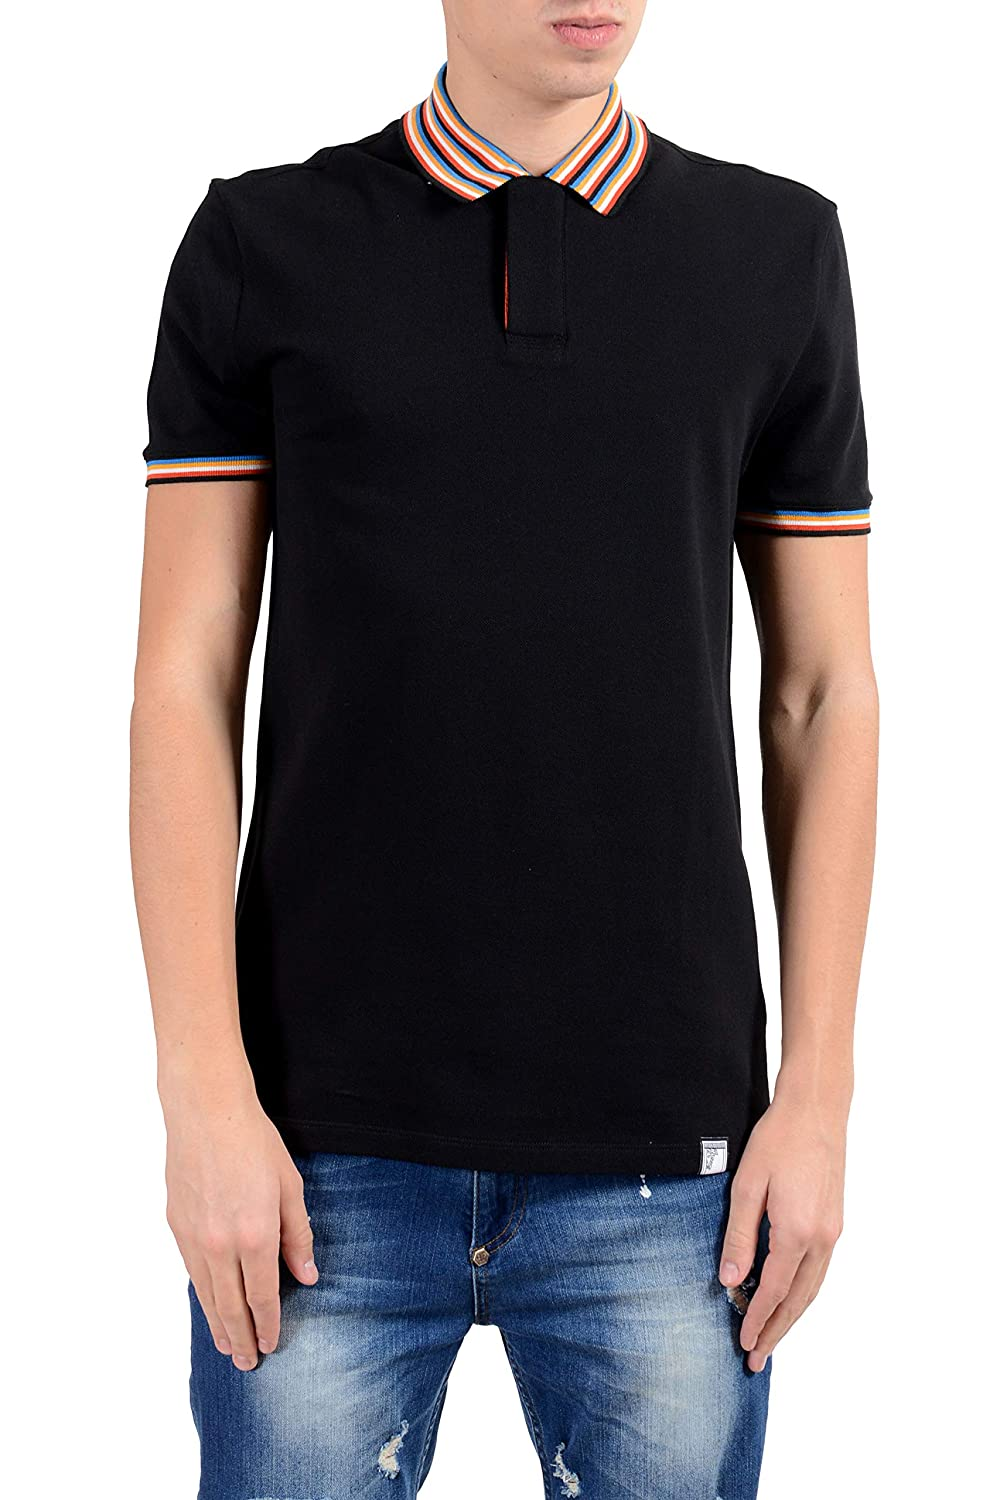 Versace Collection Mens Black Short Sleeve Polo Shirt Size US M IT 50